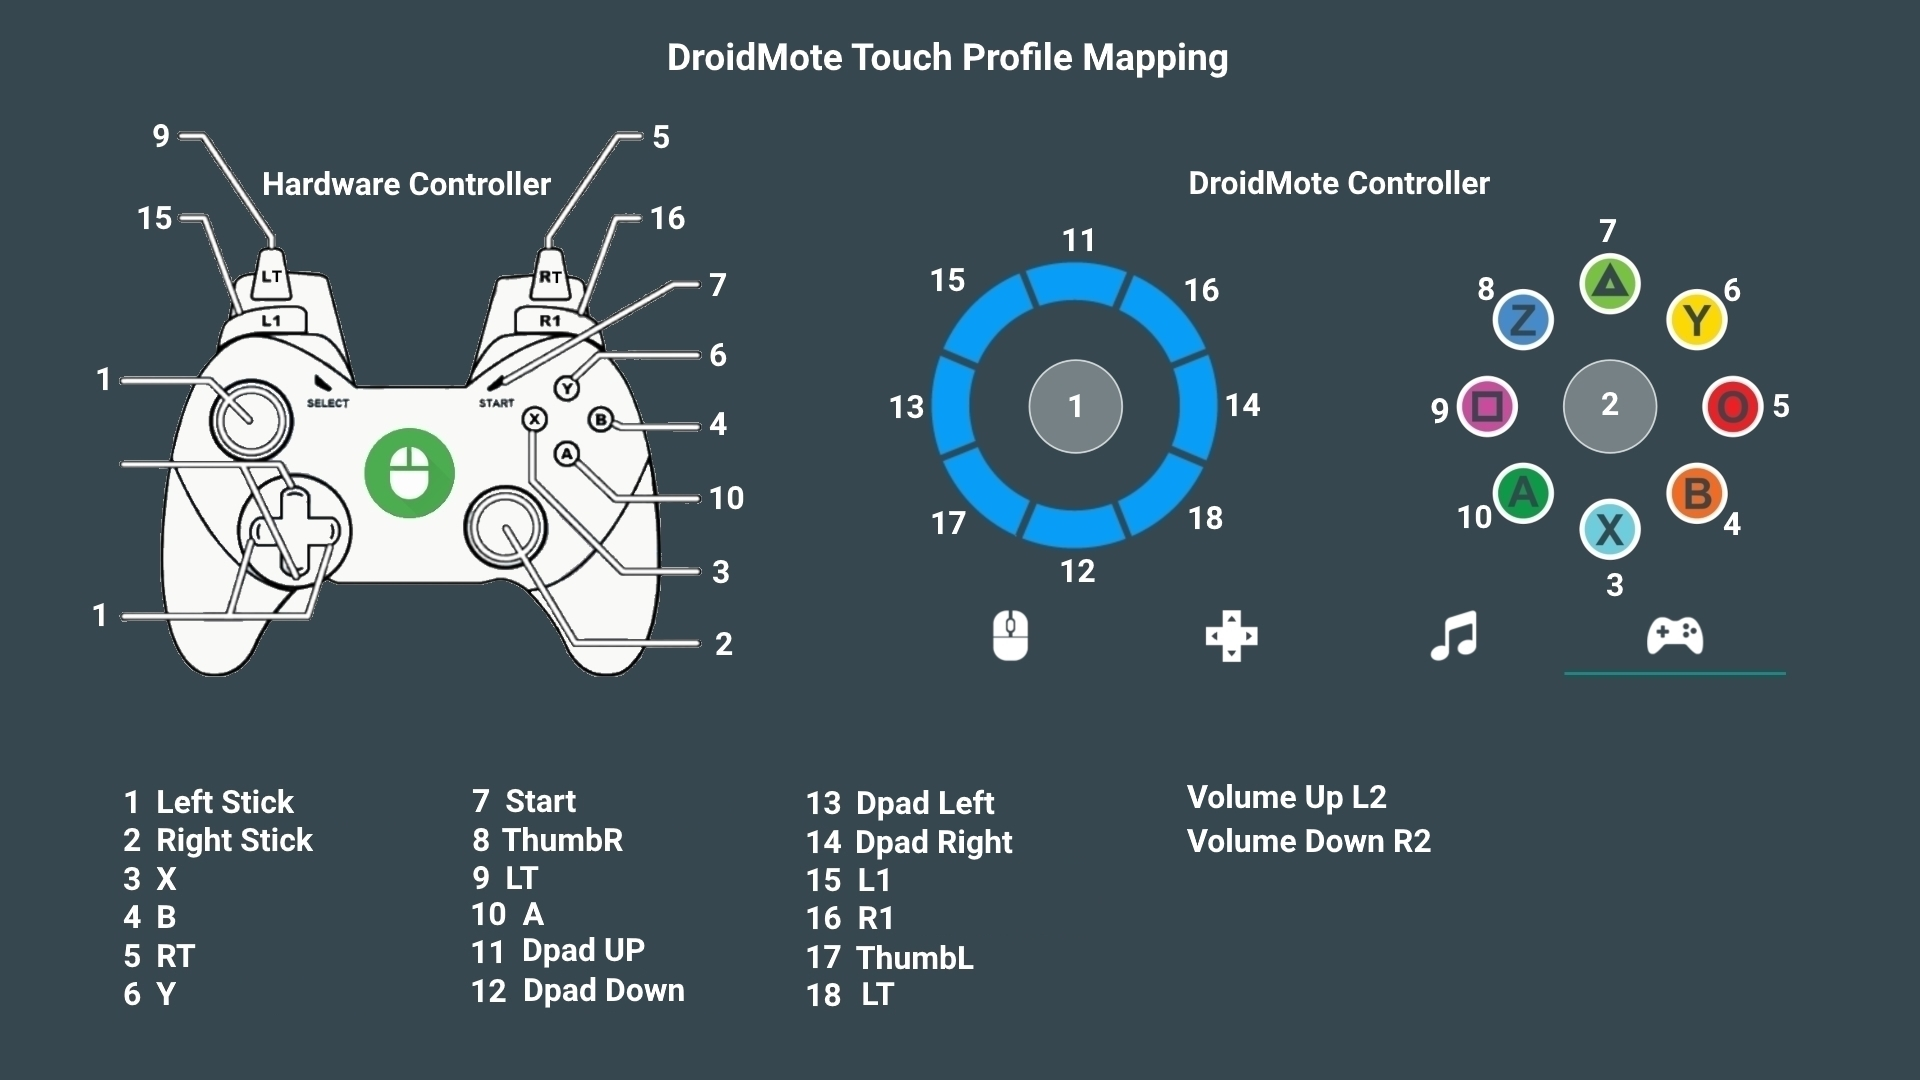 Touch Profile Mapping